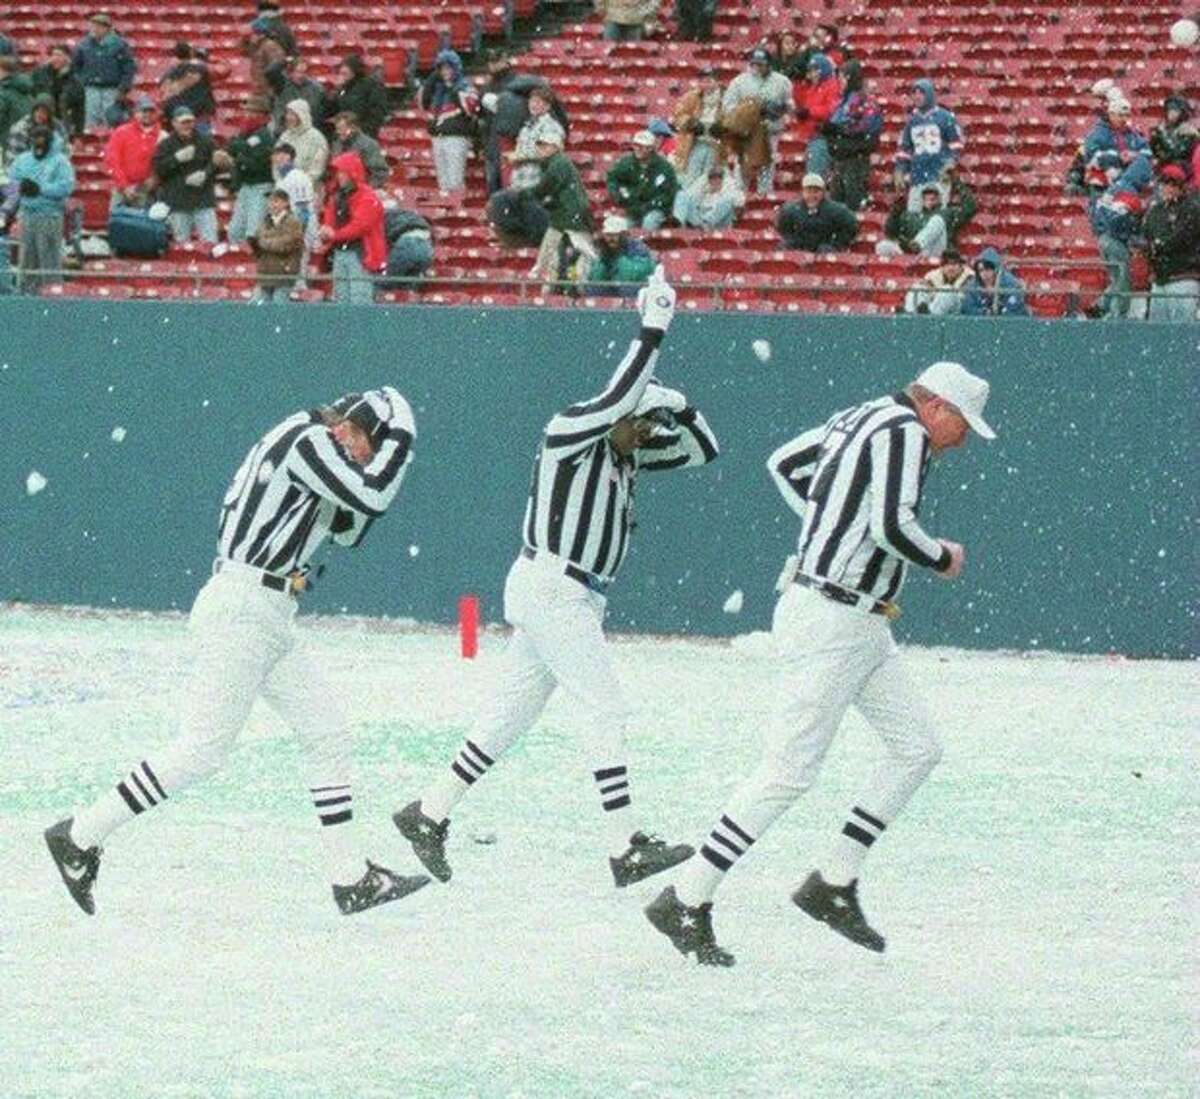 FILE - In this Dec. 23, 1995 file photo, three referees get hit with snowballs from New York Giants fans upset over a loss to the San Diego Chargers, in East Rutherford, N.J. The 197-year-old Farmers?' Almanac is already out with its forecast that a big winter storm will hit the area around 2014 Super Bowl weekend in East Rutherford. (AP Photo/Newsday, J.Conrad Williams, File) NYC LOCALS OUT NO SALES